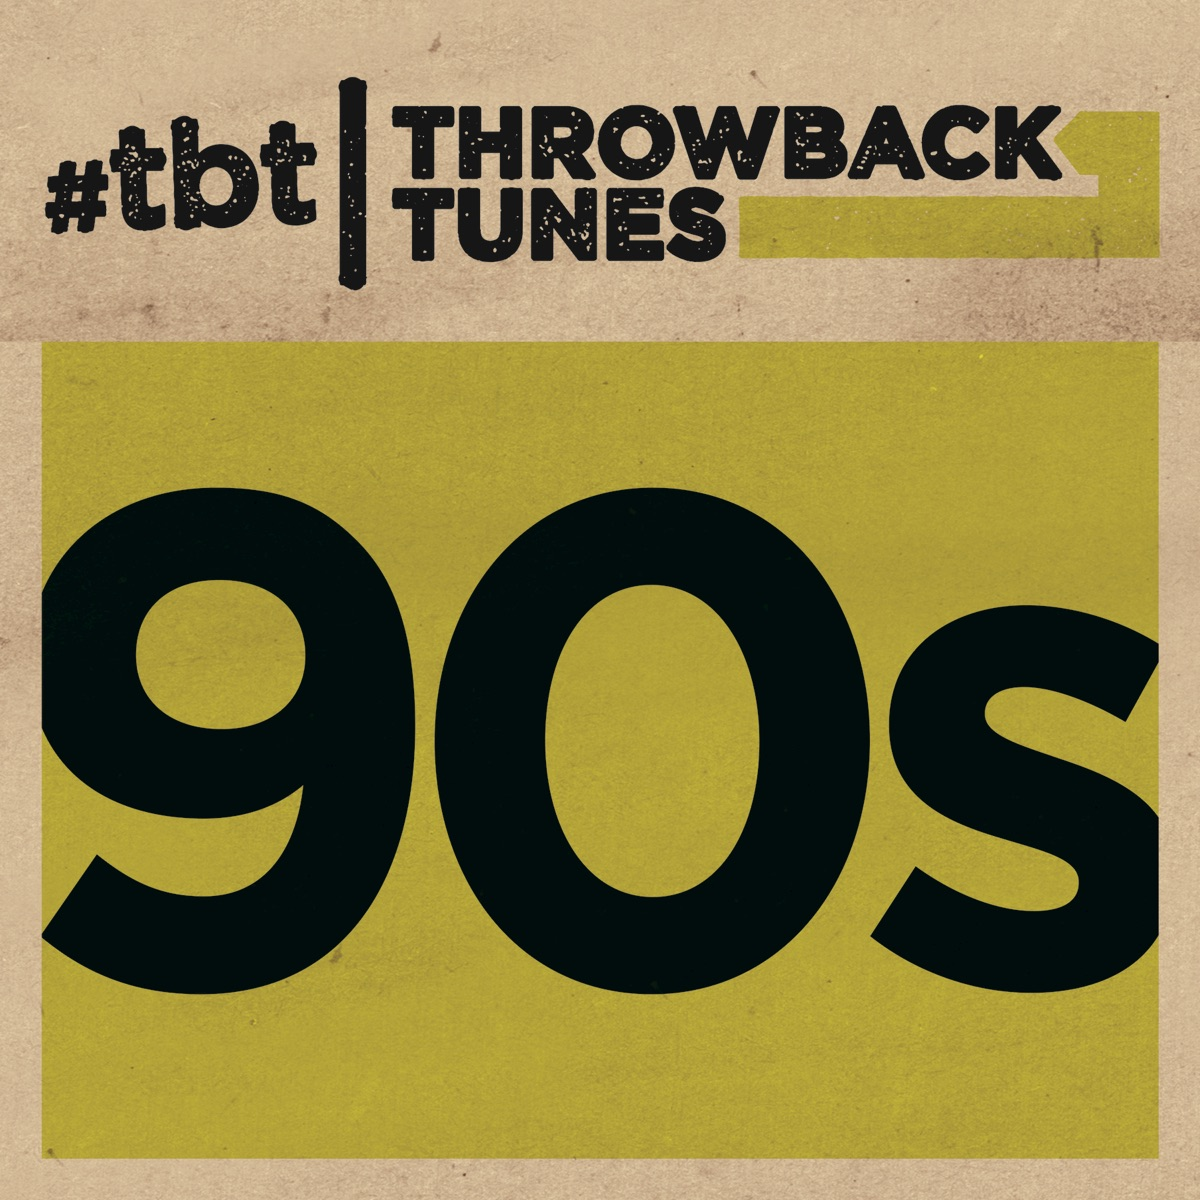 Throwback Tunes 90s Various Artists CD cover